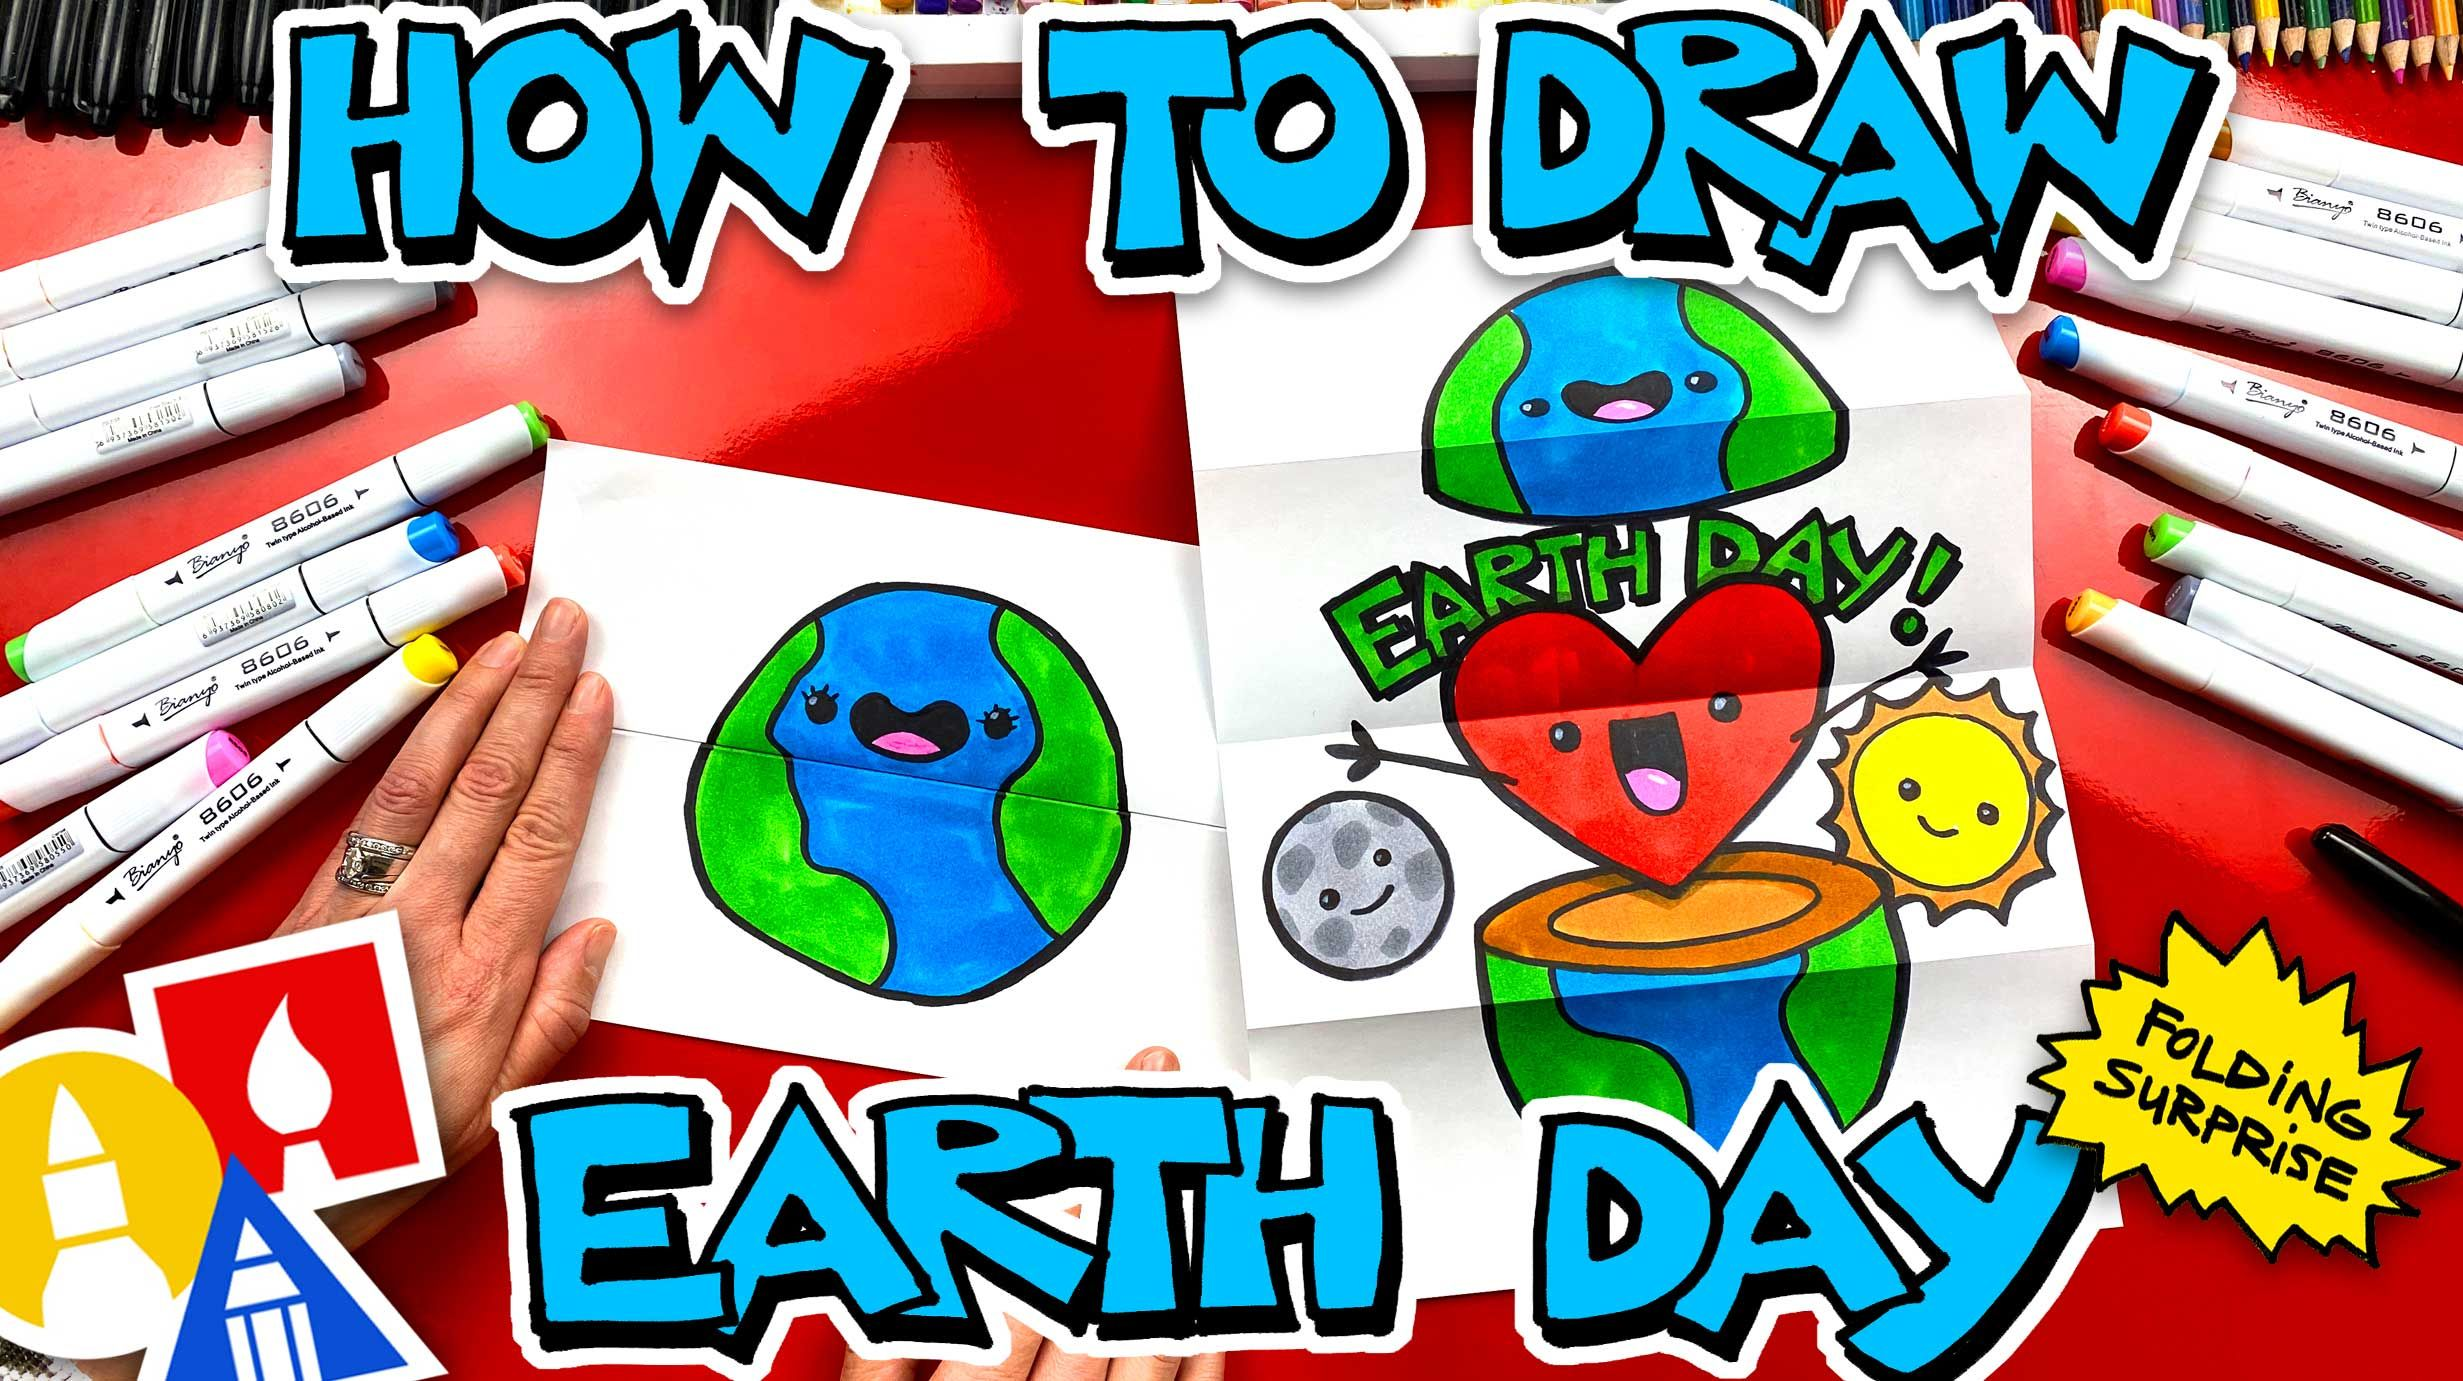 How To Draw An Earth Day Folding Surprise Art For Kids Hub In 2020 Art For Kids Hub Art Drawings For Kids Art For Kids